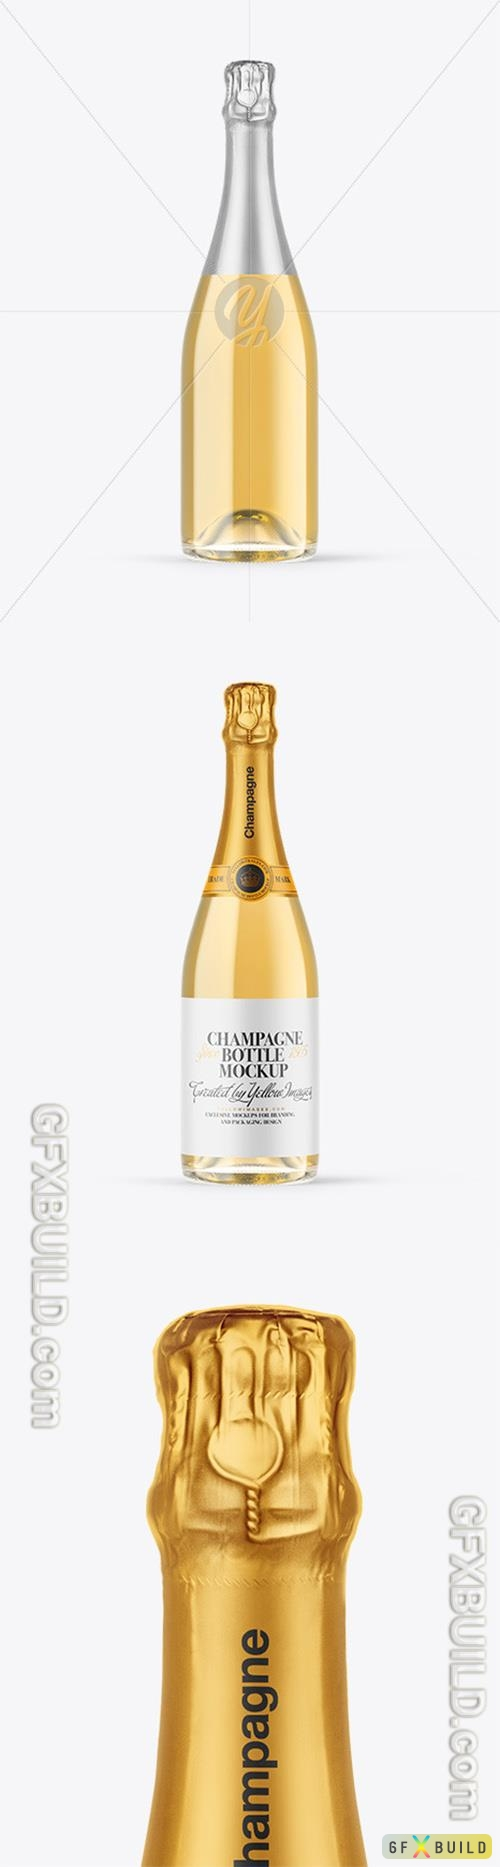 Clear Glass White Champagne Bottle Mockup 89333